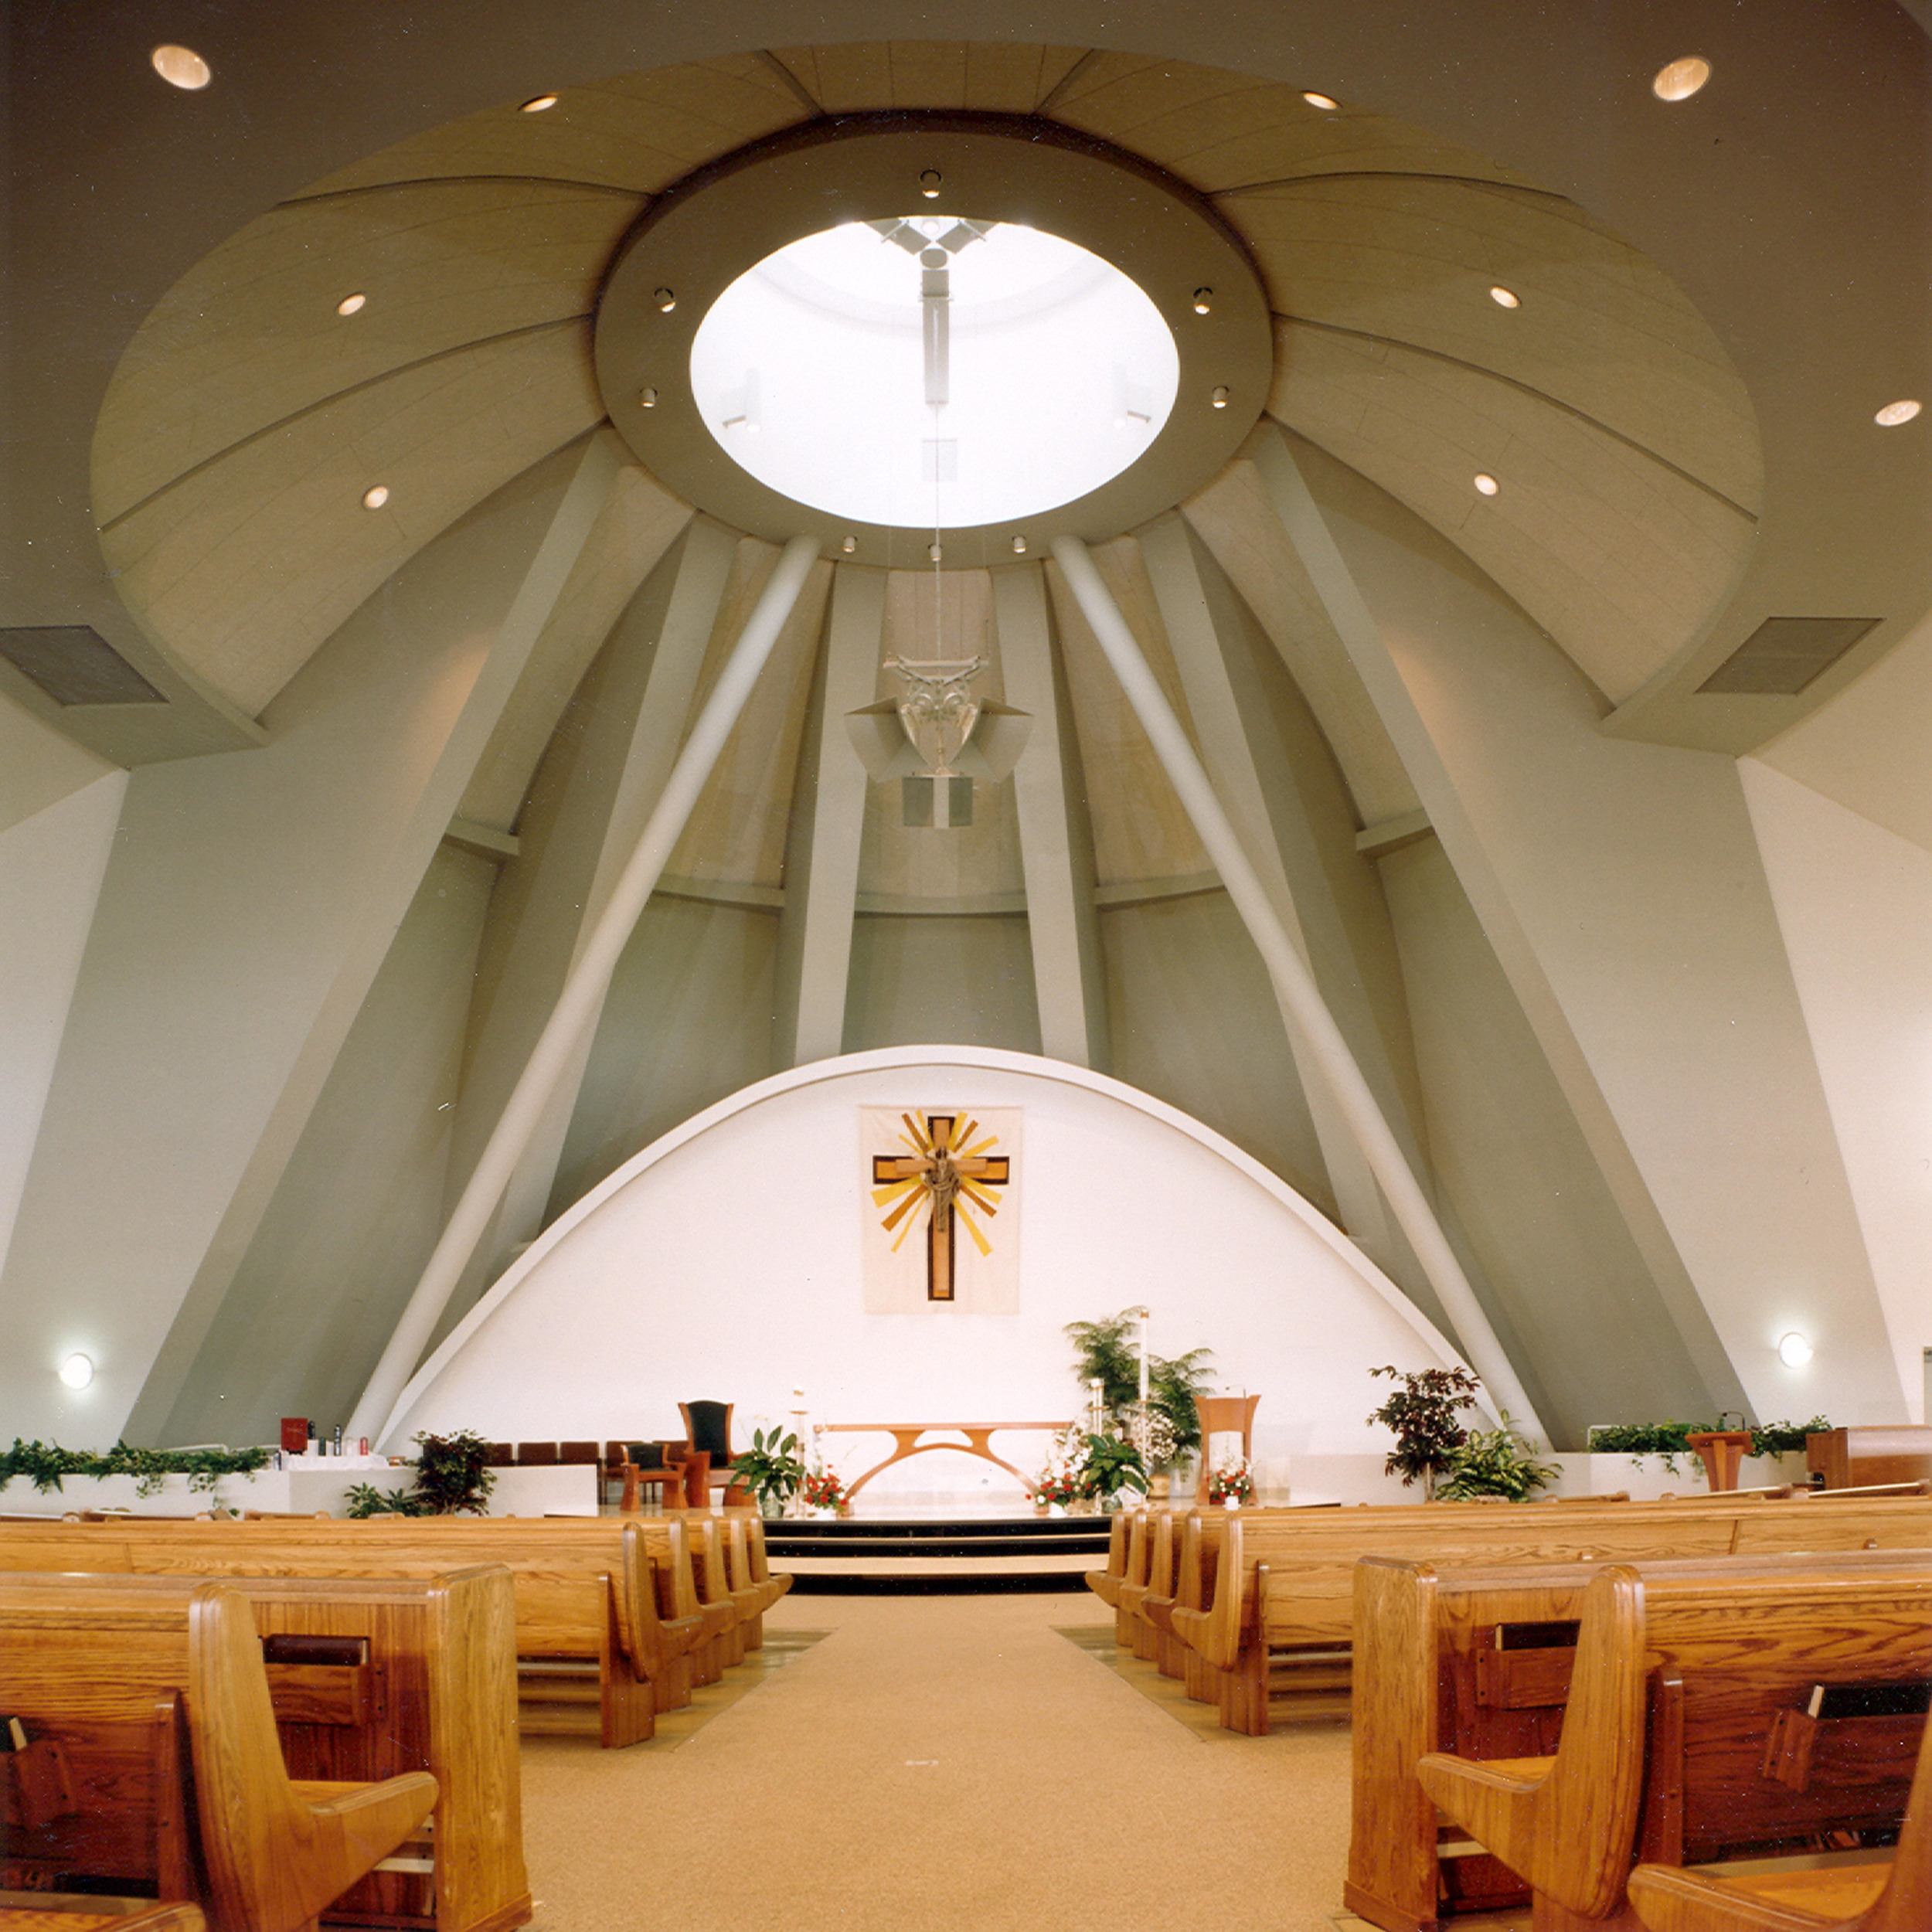 St. Mary Immaculate Plainfield Altar.jpg